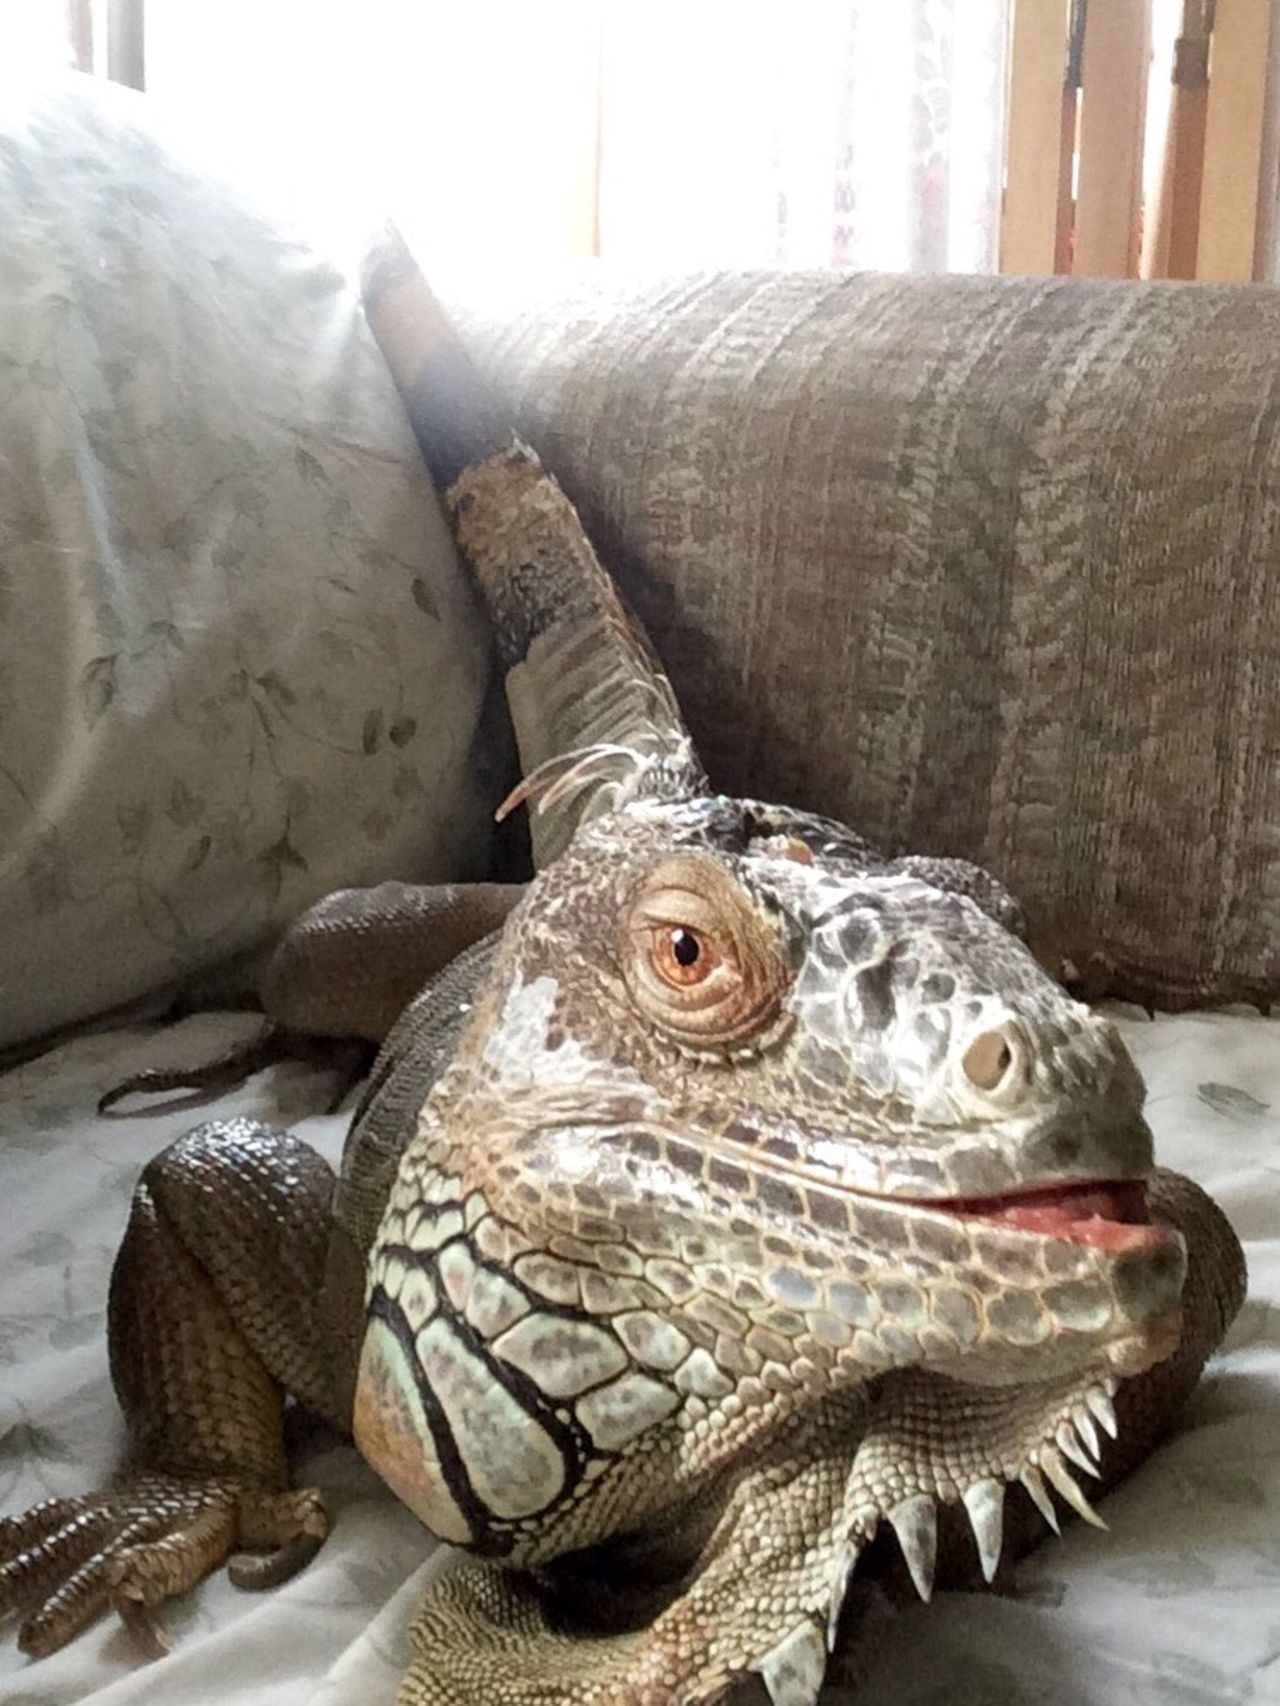 My mother in laws amazing lizard Lizard Lizard Smile Smile Smiling Animal Lizard Close Up Lizard Friend Color Lizard Cuteness Pets Pets Selfie Pet Smile Oregon Cheese!